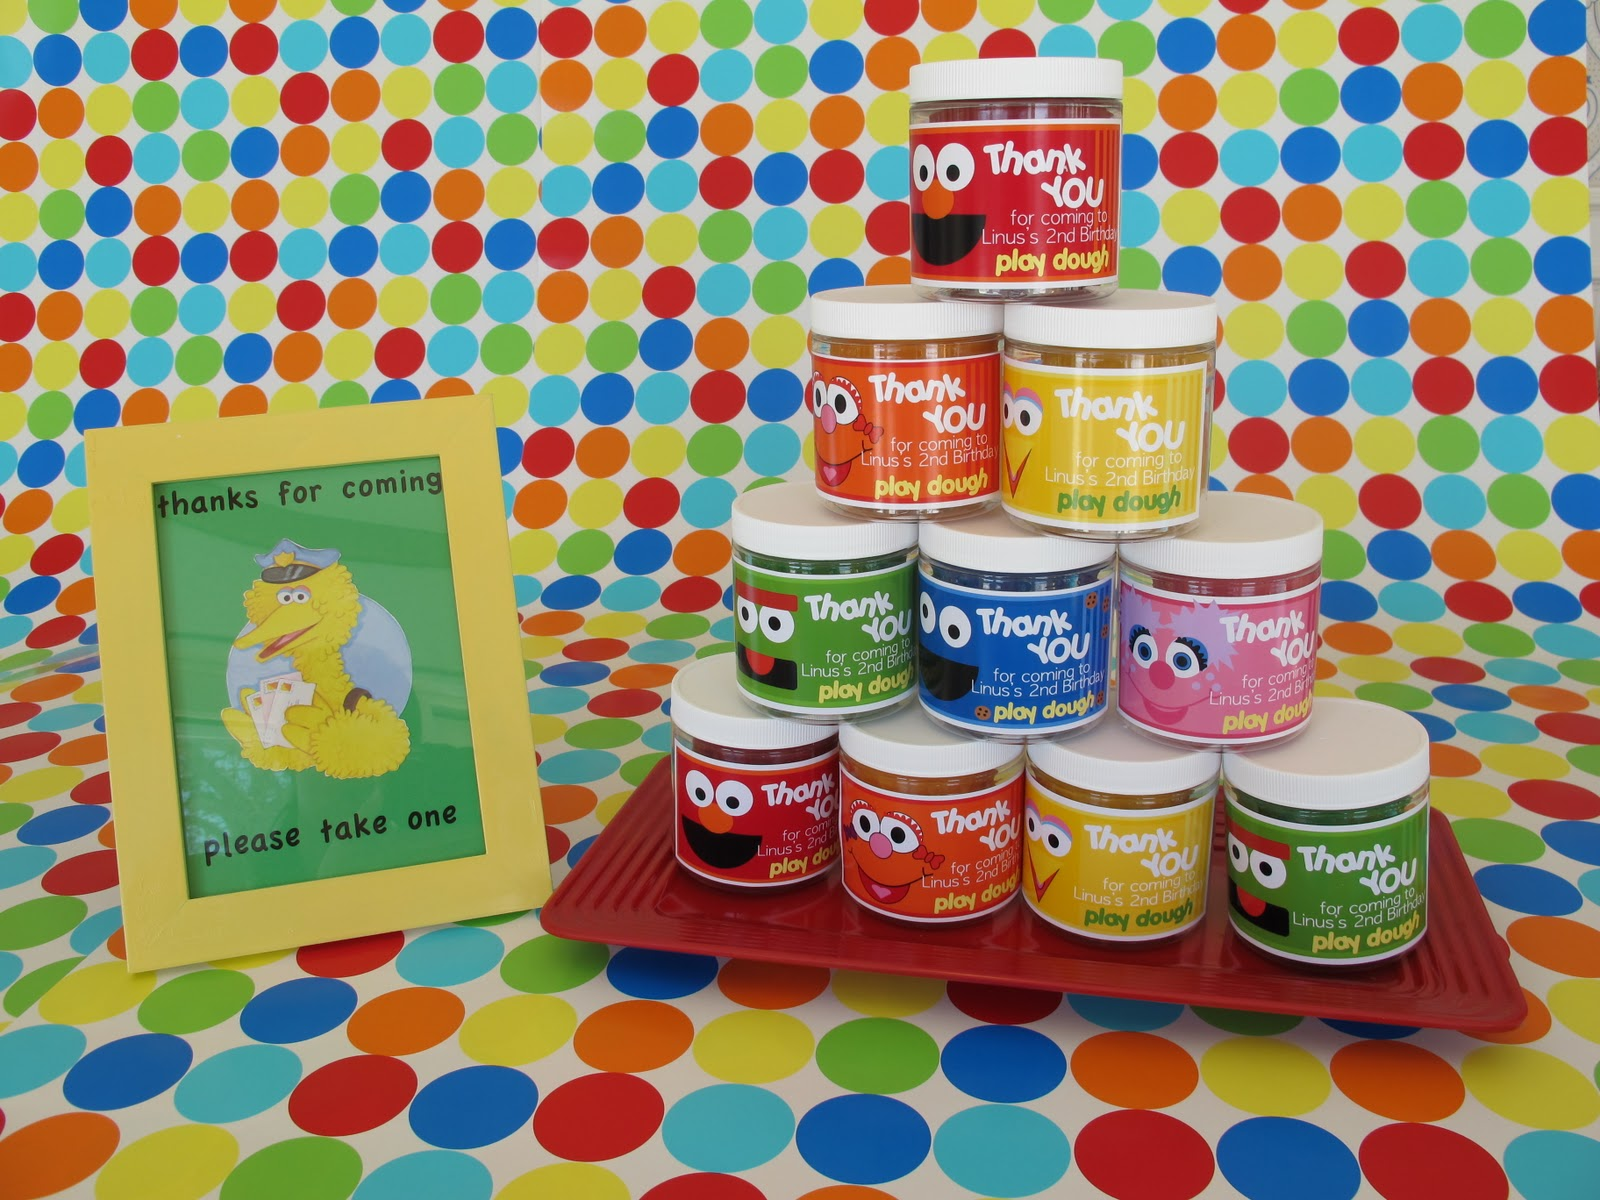 Find more favor ideas and diy suggestions in our sesame street party